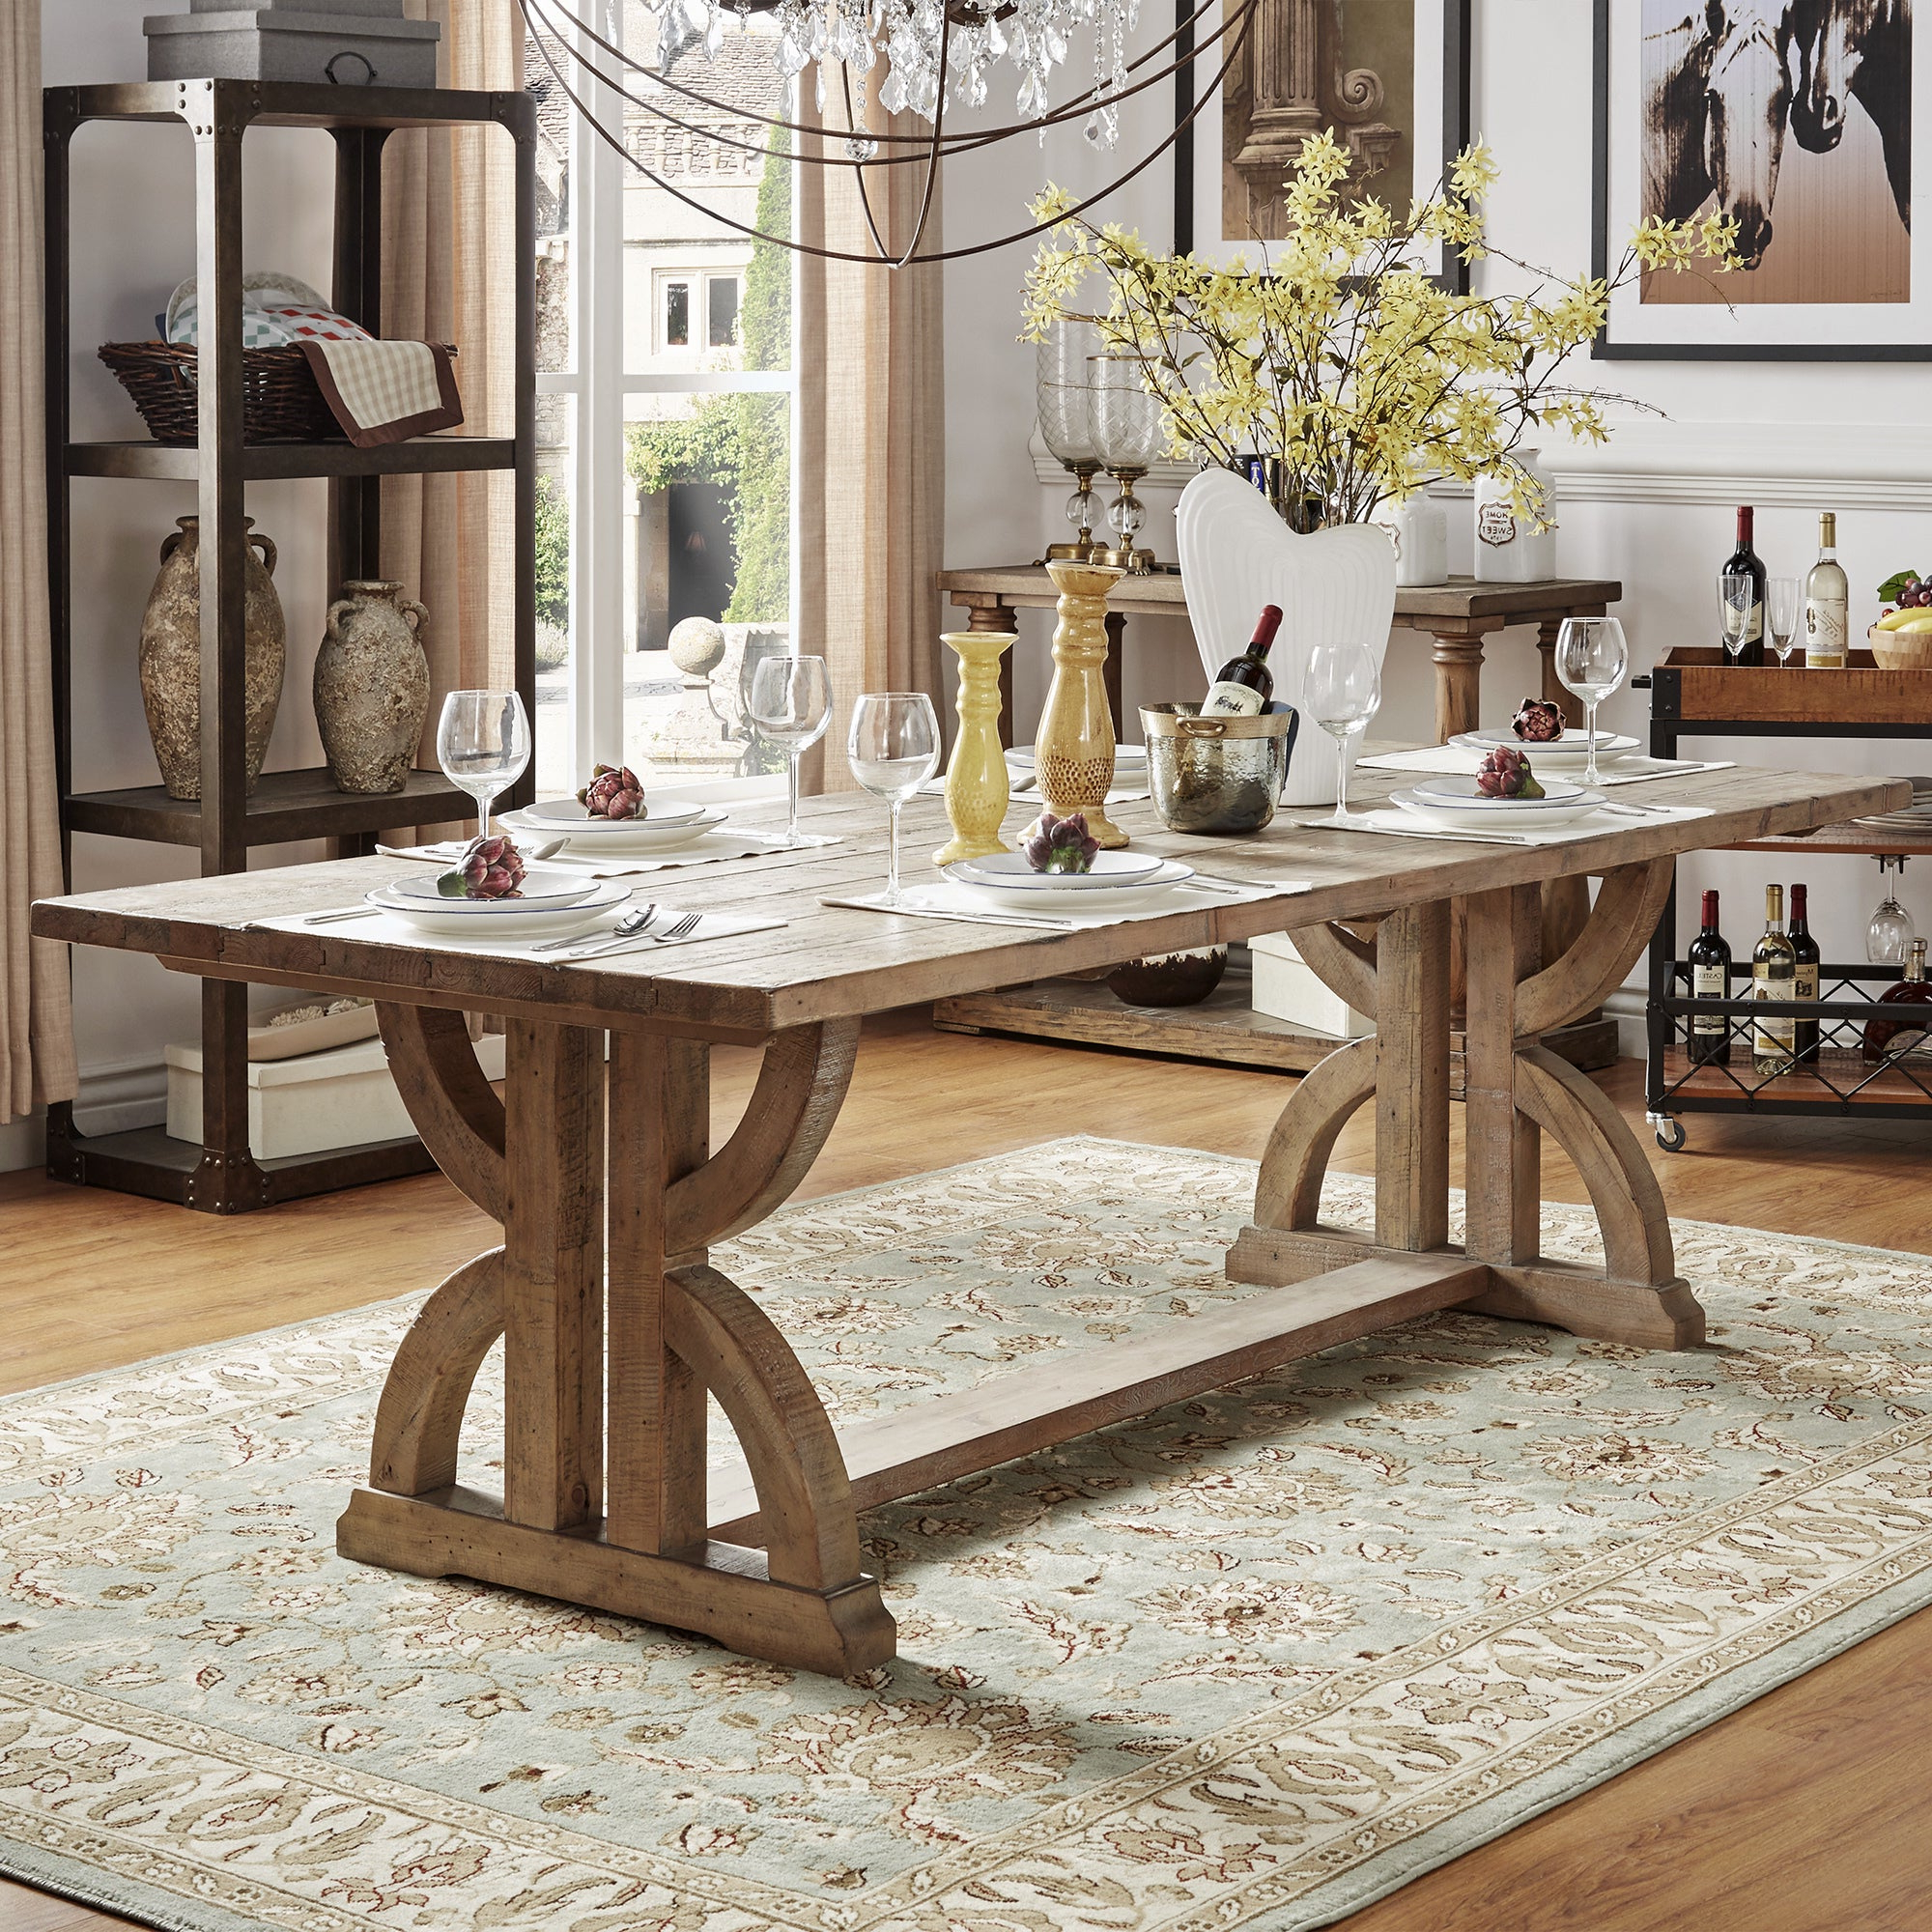 Falmer 3 Piece Solid Wood Dining Sets In Most Popular Buy Rustic Kitchen & Dining Room Tables Online At Overstock (View 15 of 25)